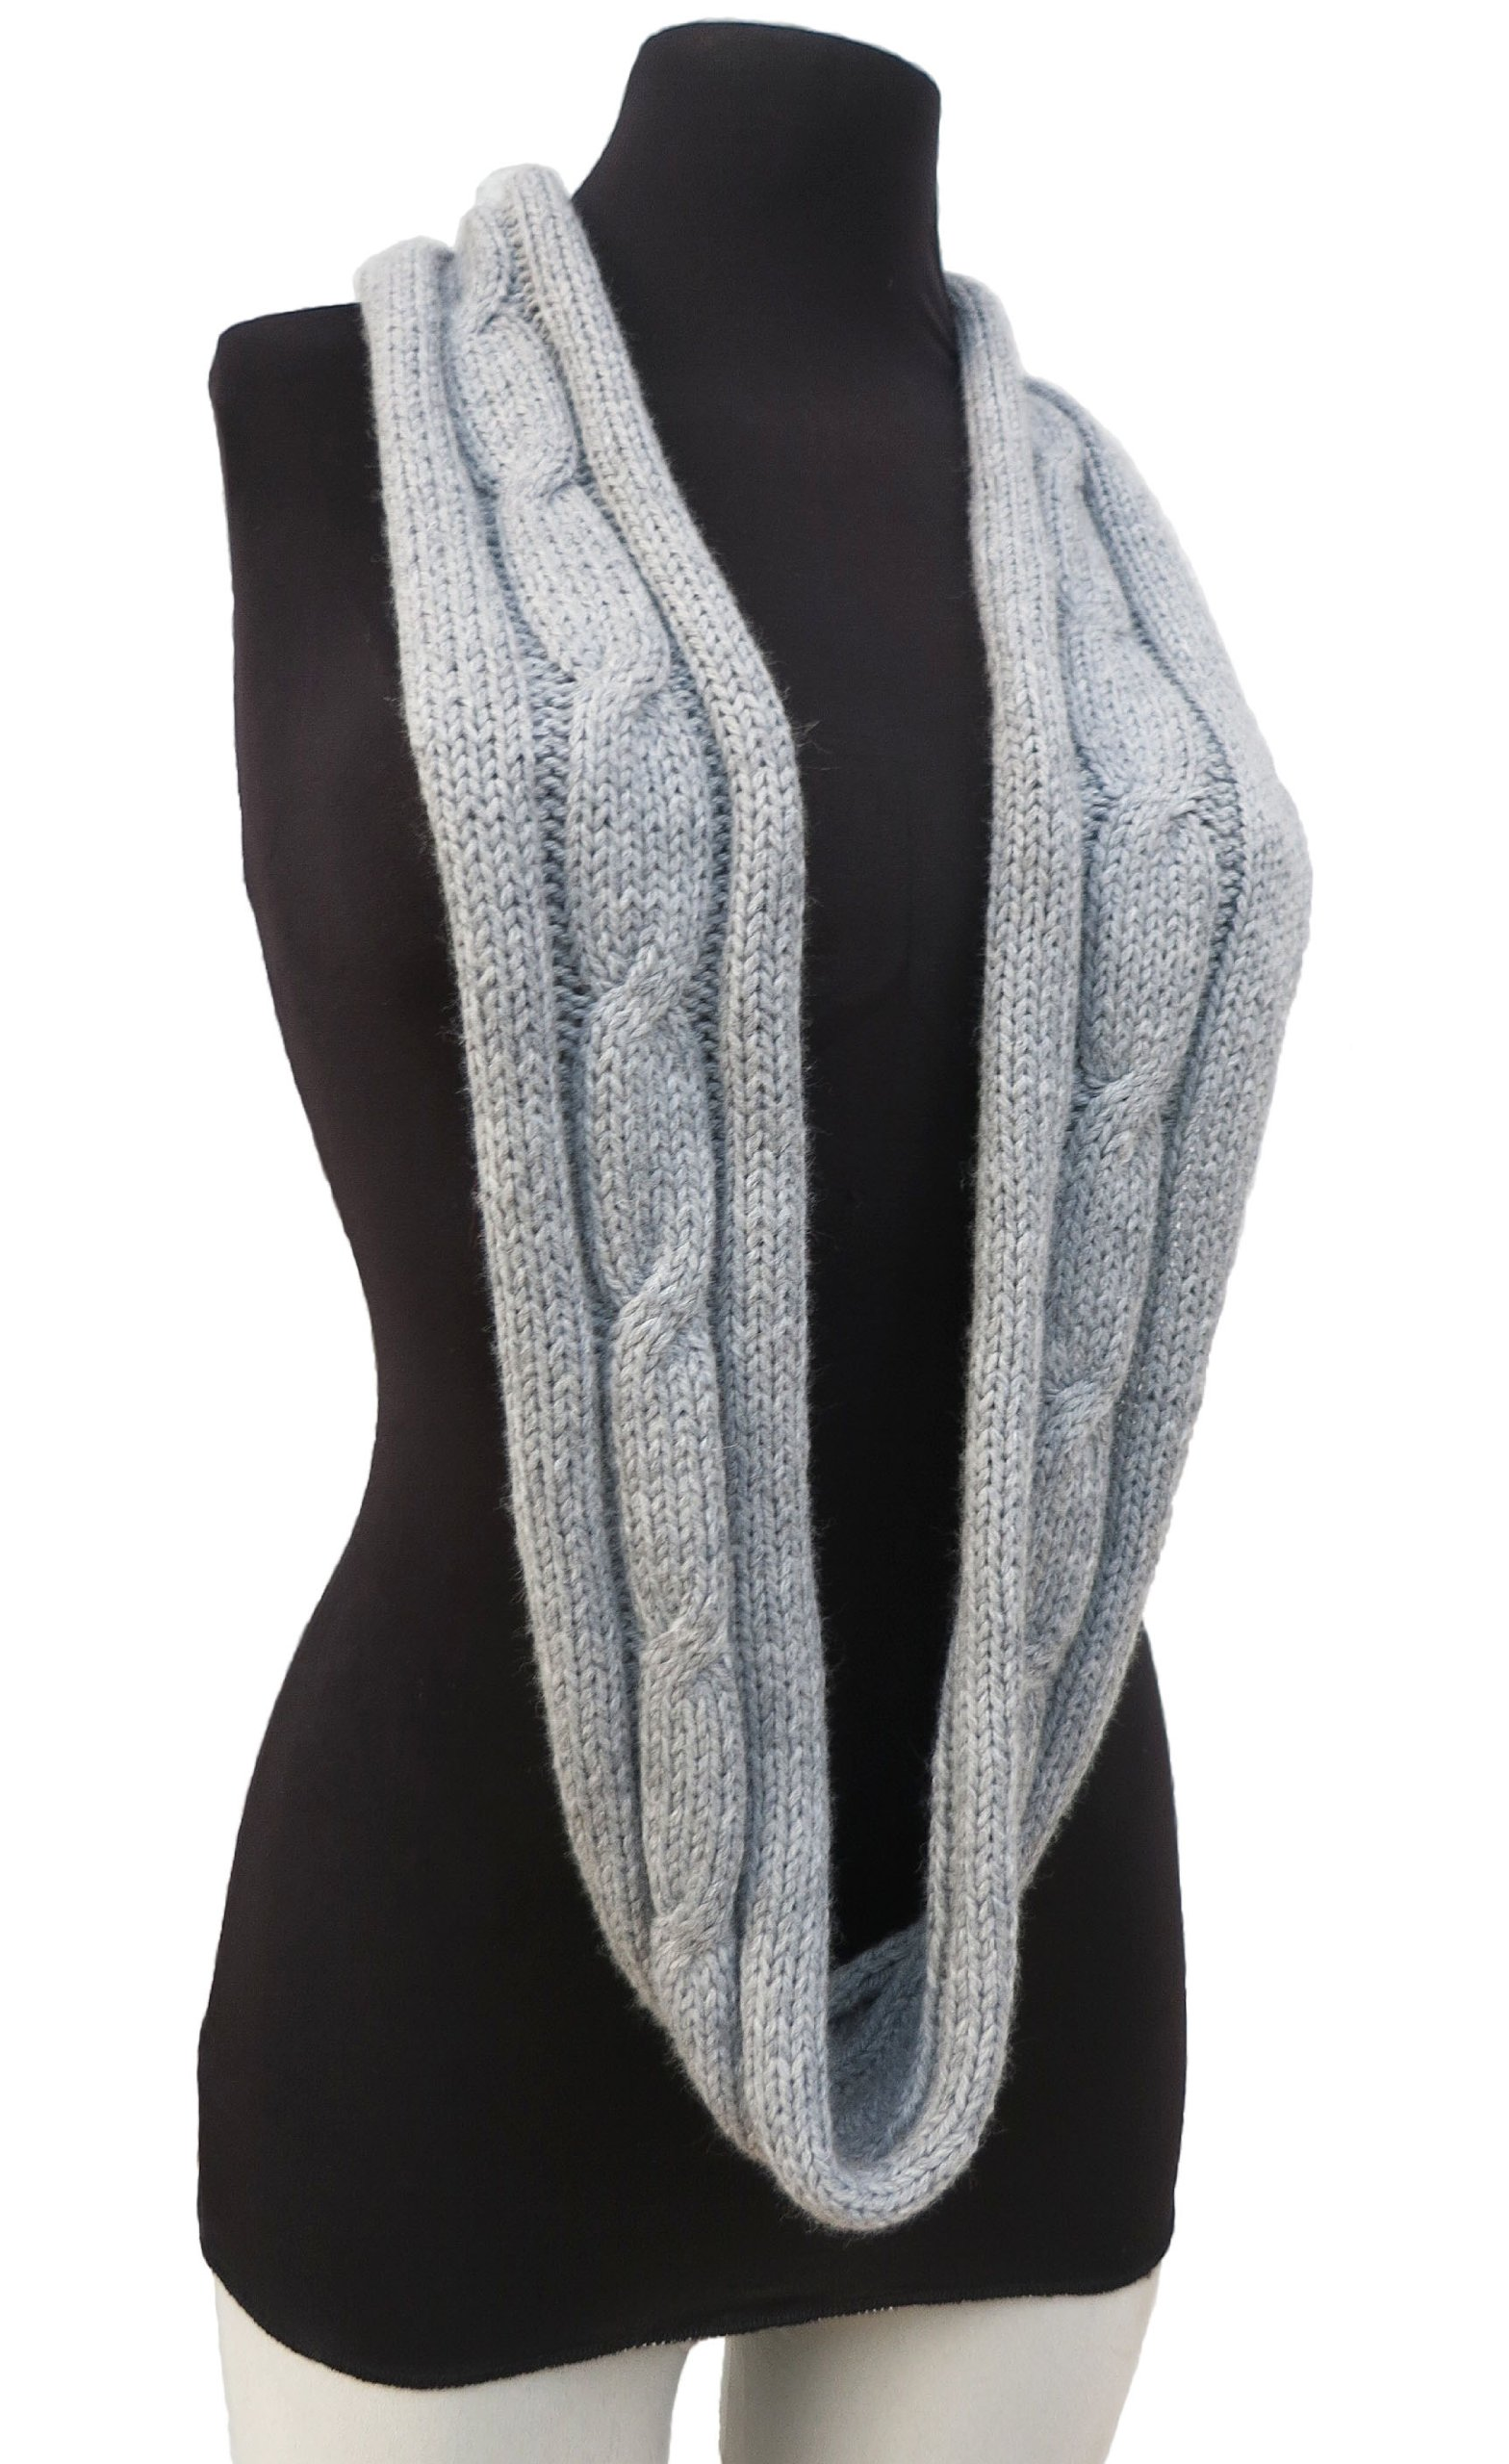 Handmade PURE Alpaca Infinity Loop Scarf - French Gray by BARBERY Alpaca Accessories